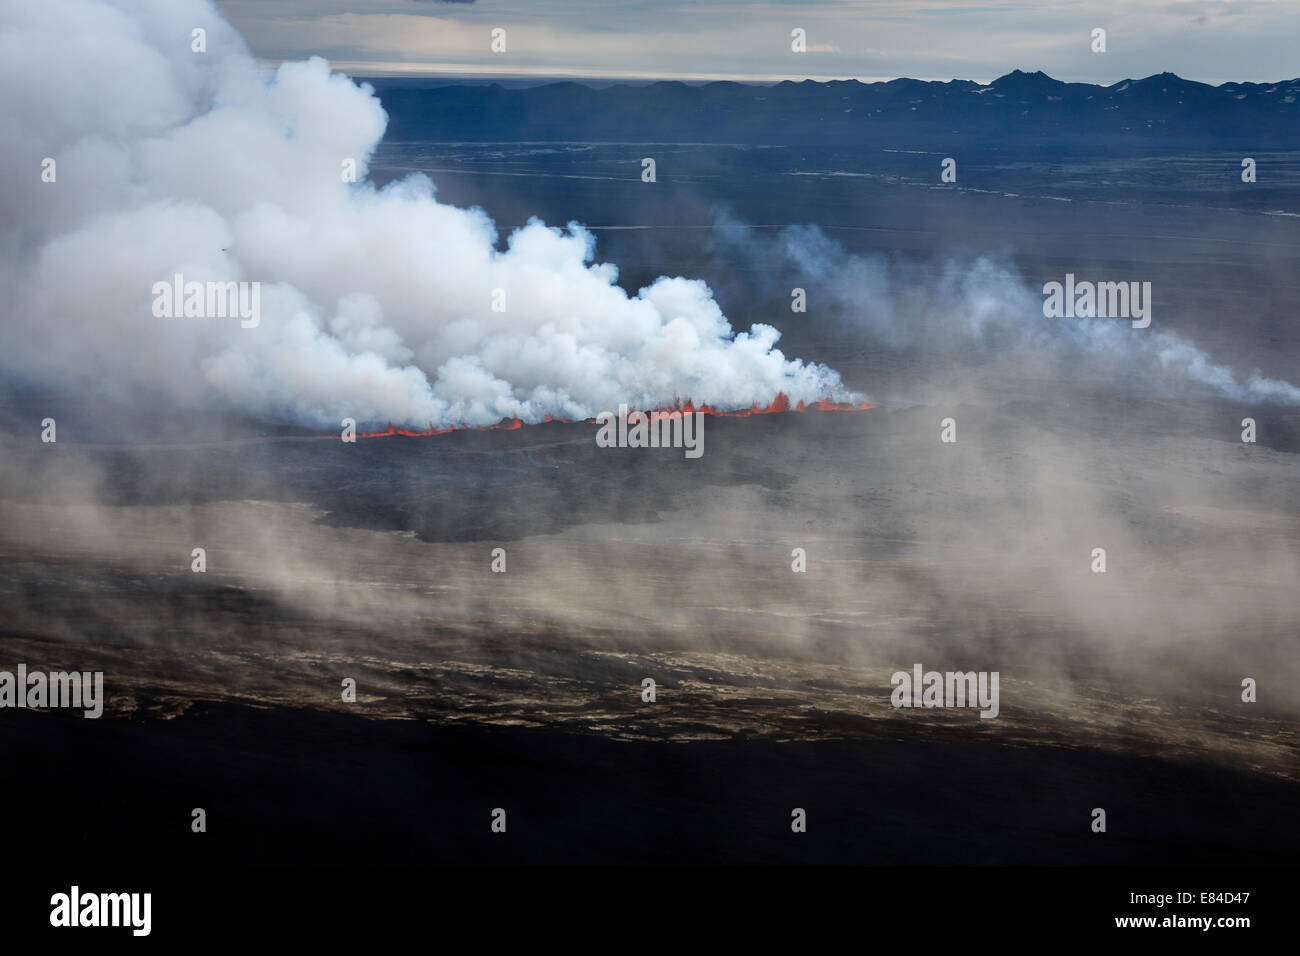 Lava and plumes from the Holuhraun Fissure Eruption by the Bardarbunga Volcano, Iceland. Stock Photo